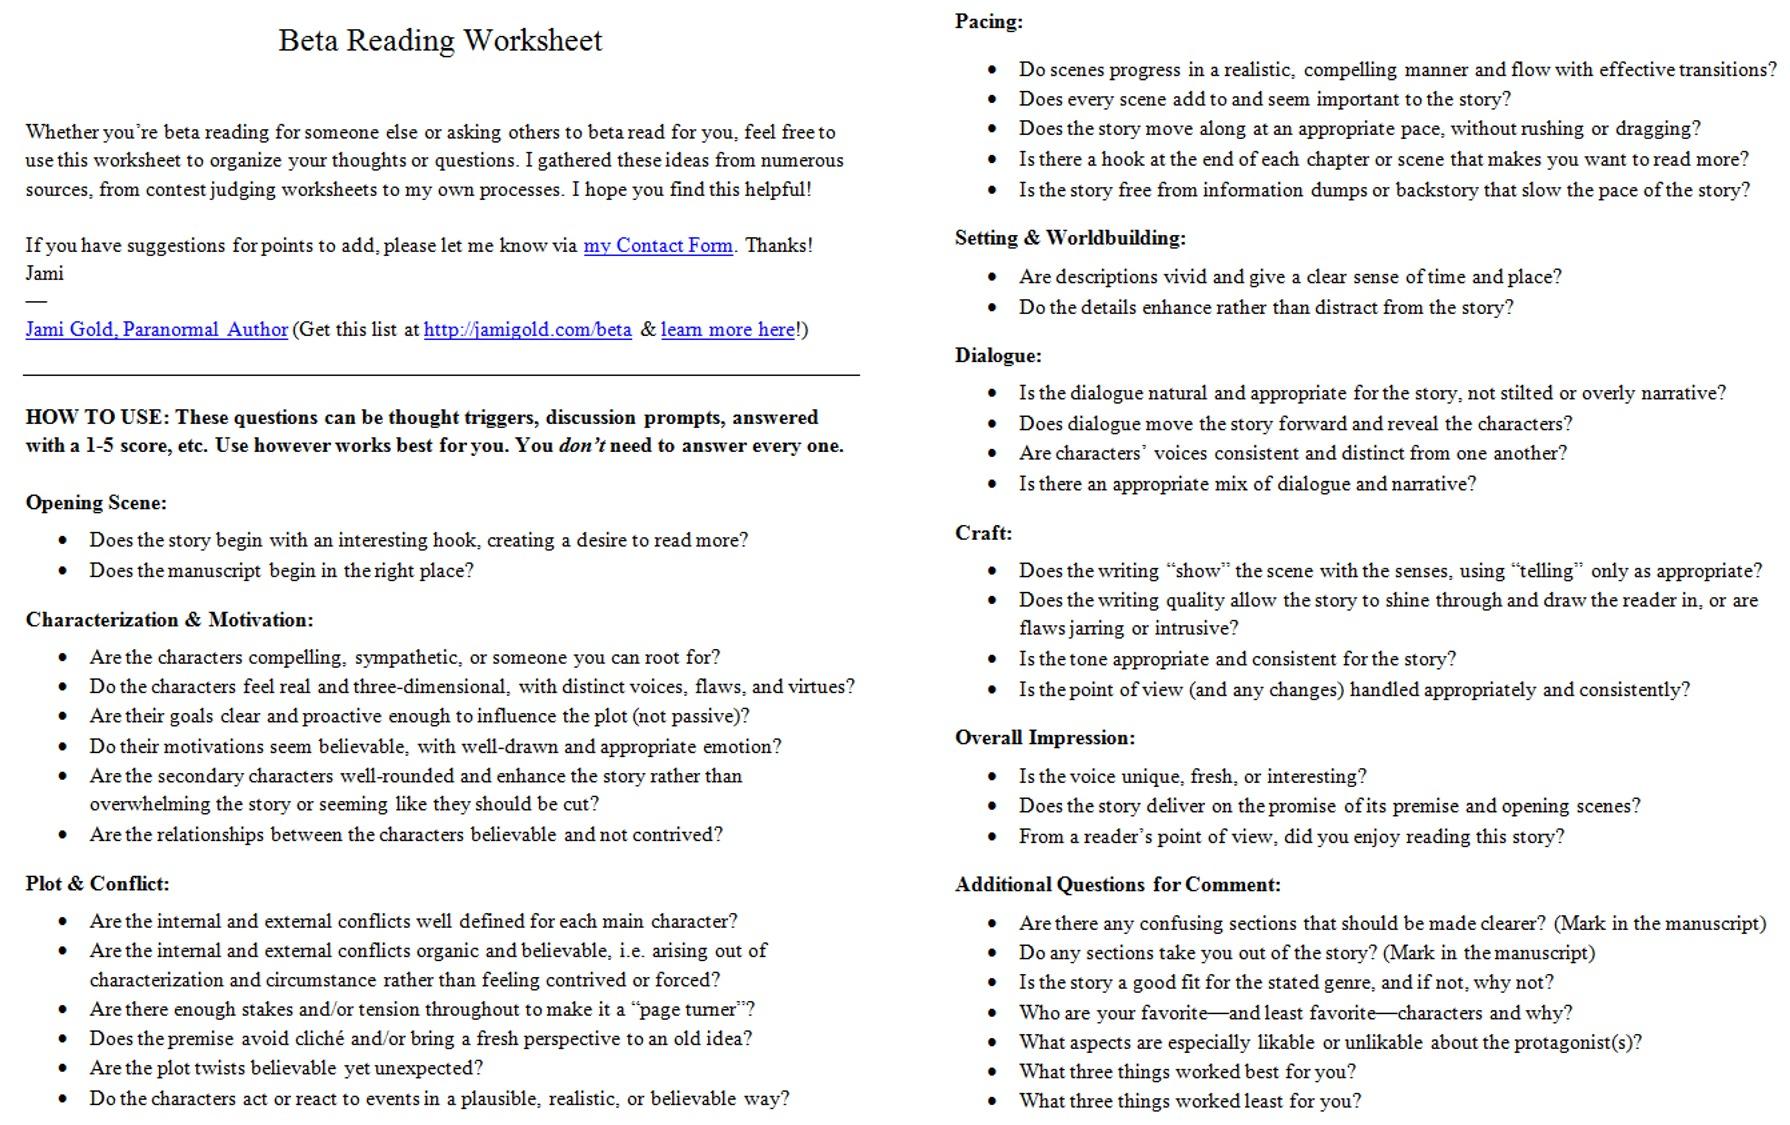 Proatmealus  Prepossessing Worksheets For Writers  Jami Gold Paranormal Author With Licious Screen Shot Of The Twopage Beta Reading Worksheet With Attractive Independent Reading Worksheet Also Colouring Worksheets For Preschool Kids In Addition Initial Sound Worksheets For Kindergarten And Making Analogies Worksheet As Well As Cut And Paste Shapes Worksheets Additionally Families Of Instruments Worksheets From Jamigoldcom With Proatmealus  Licious Worksheets For Writers  Jami Gold Paranormal Author With Attractive Screen Shot Of The Twopage Beta Reading Worksheet And Prepossessing Independent Reading Worksheet Also Colouring Worksheets For Preschool Kids In Addition Initial Sound Worksheets For Kindergarten From Jamigoldcom